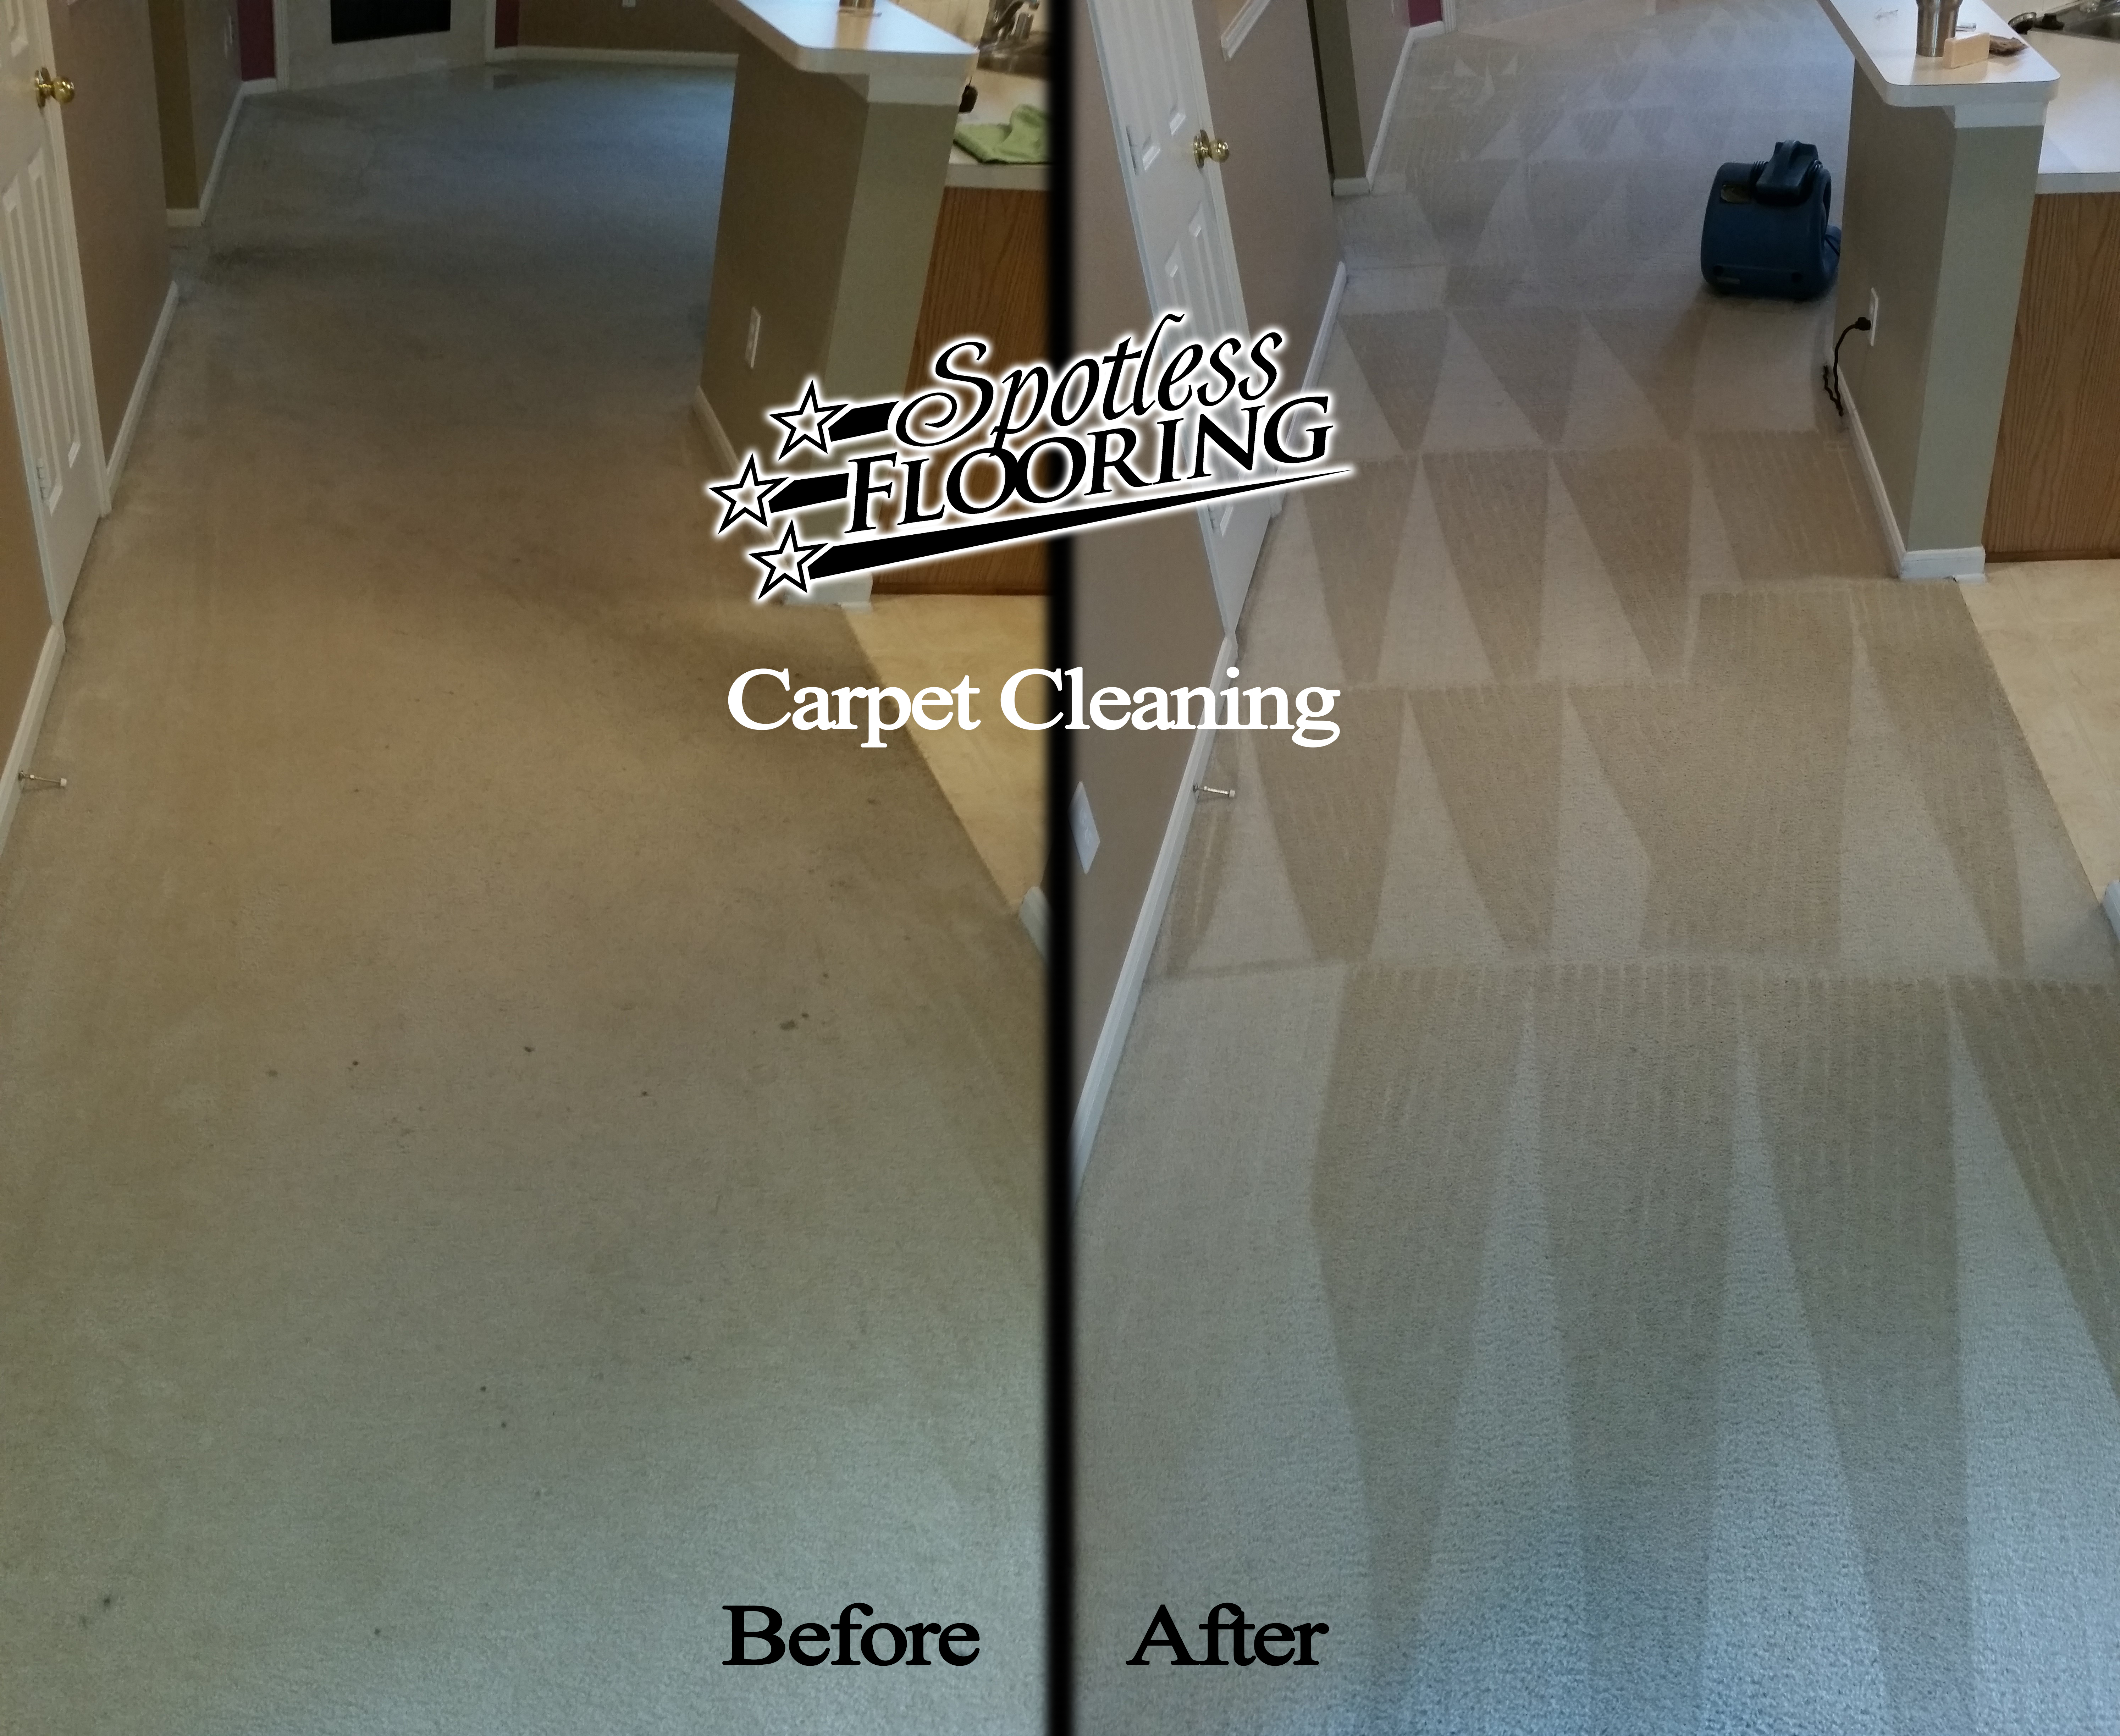 Carpet Cleaning B&A